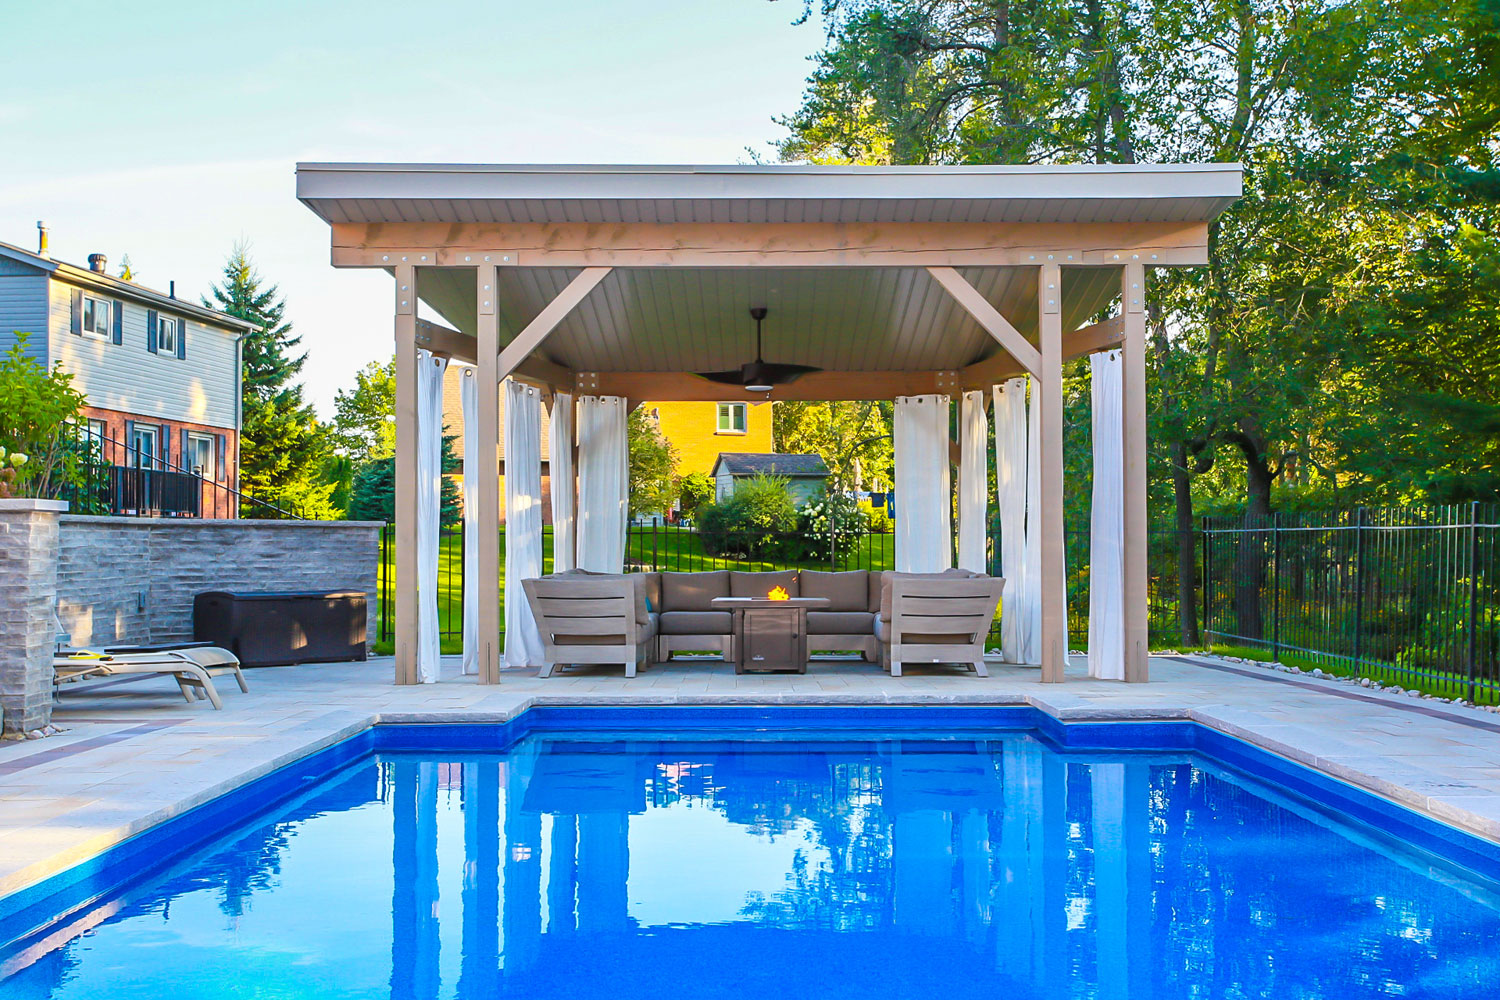 Backyard pool cabana design and construction - Total Living Concepts barrie ontario